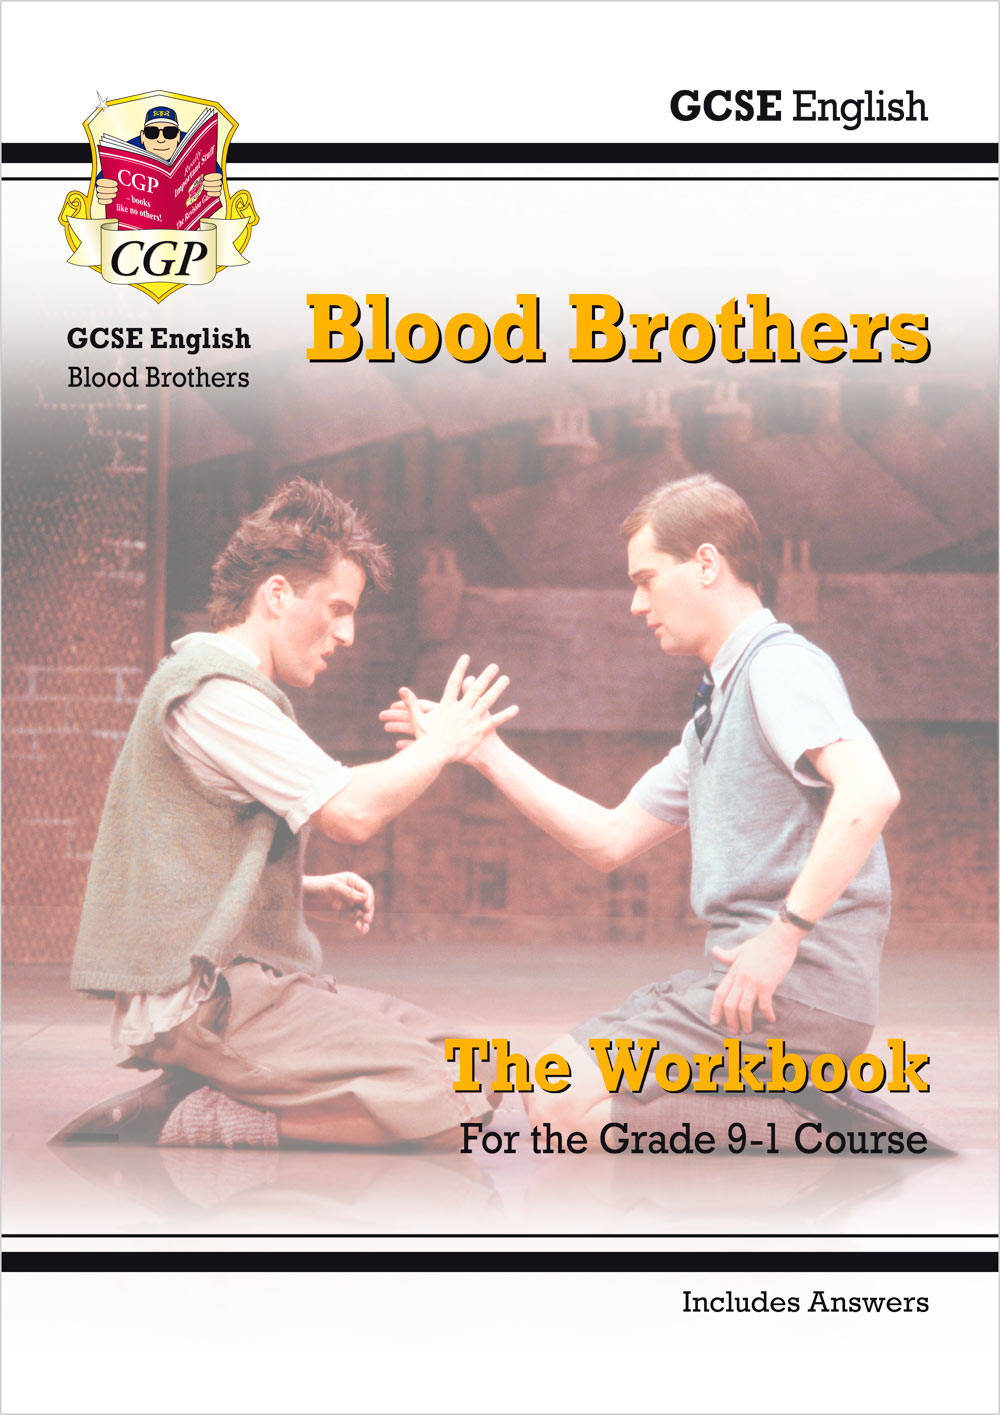 ETWBB41 - New Grade 9-1 GCSE English - Blood Brothers Workbook (includes Answers)